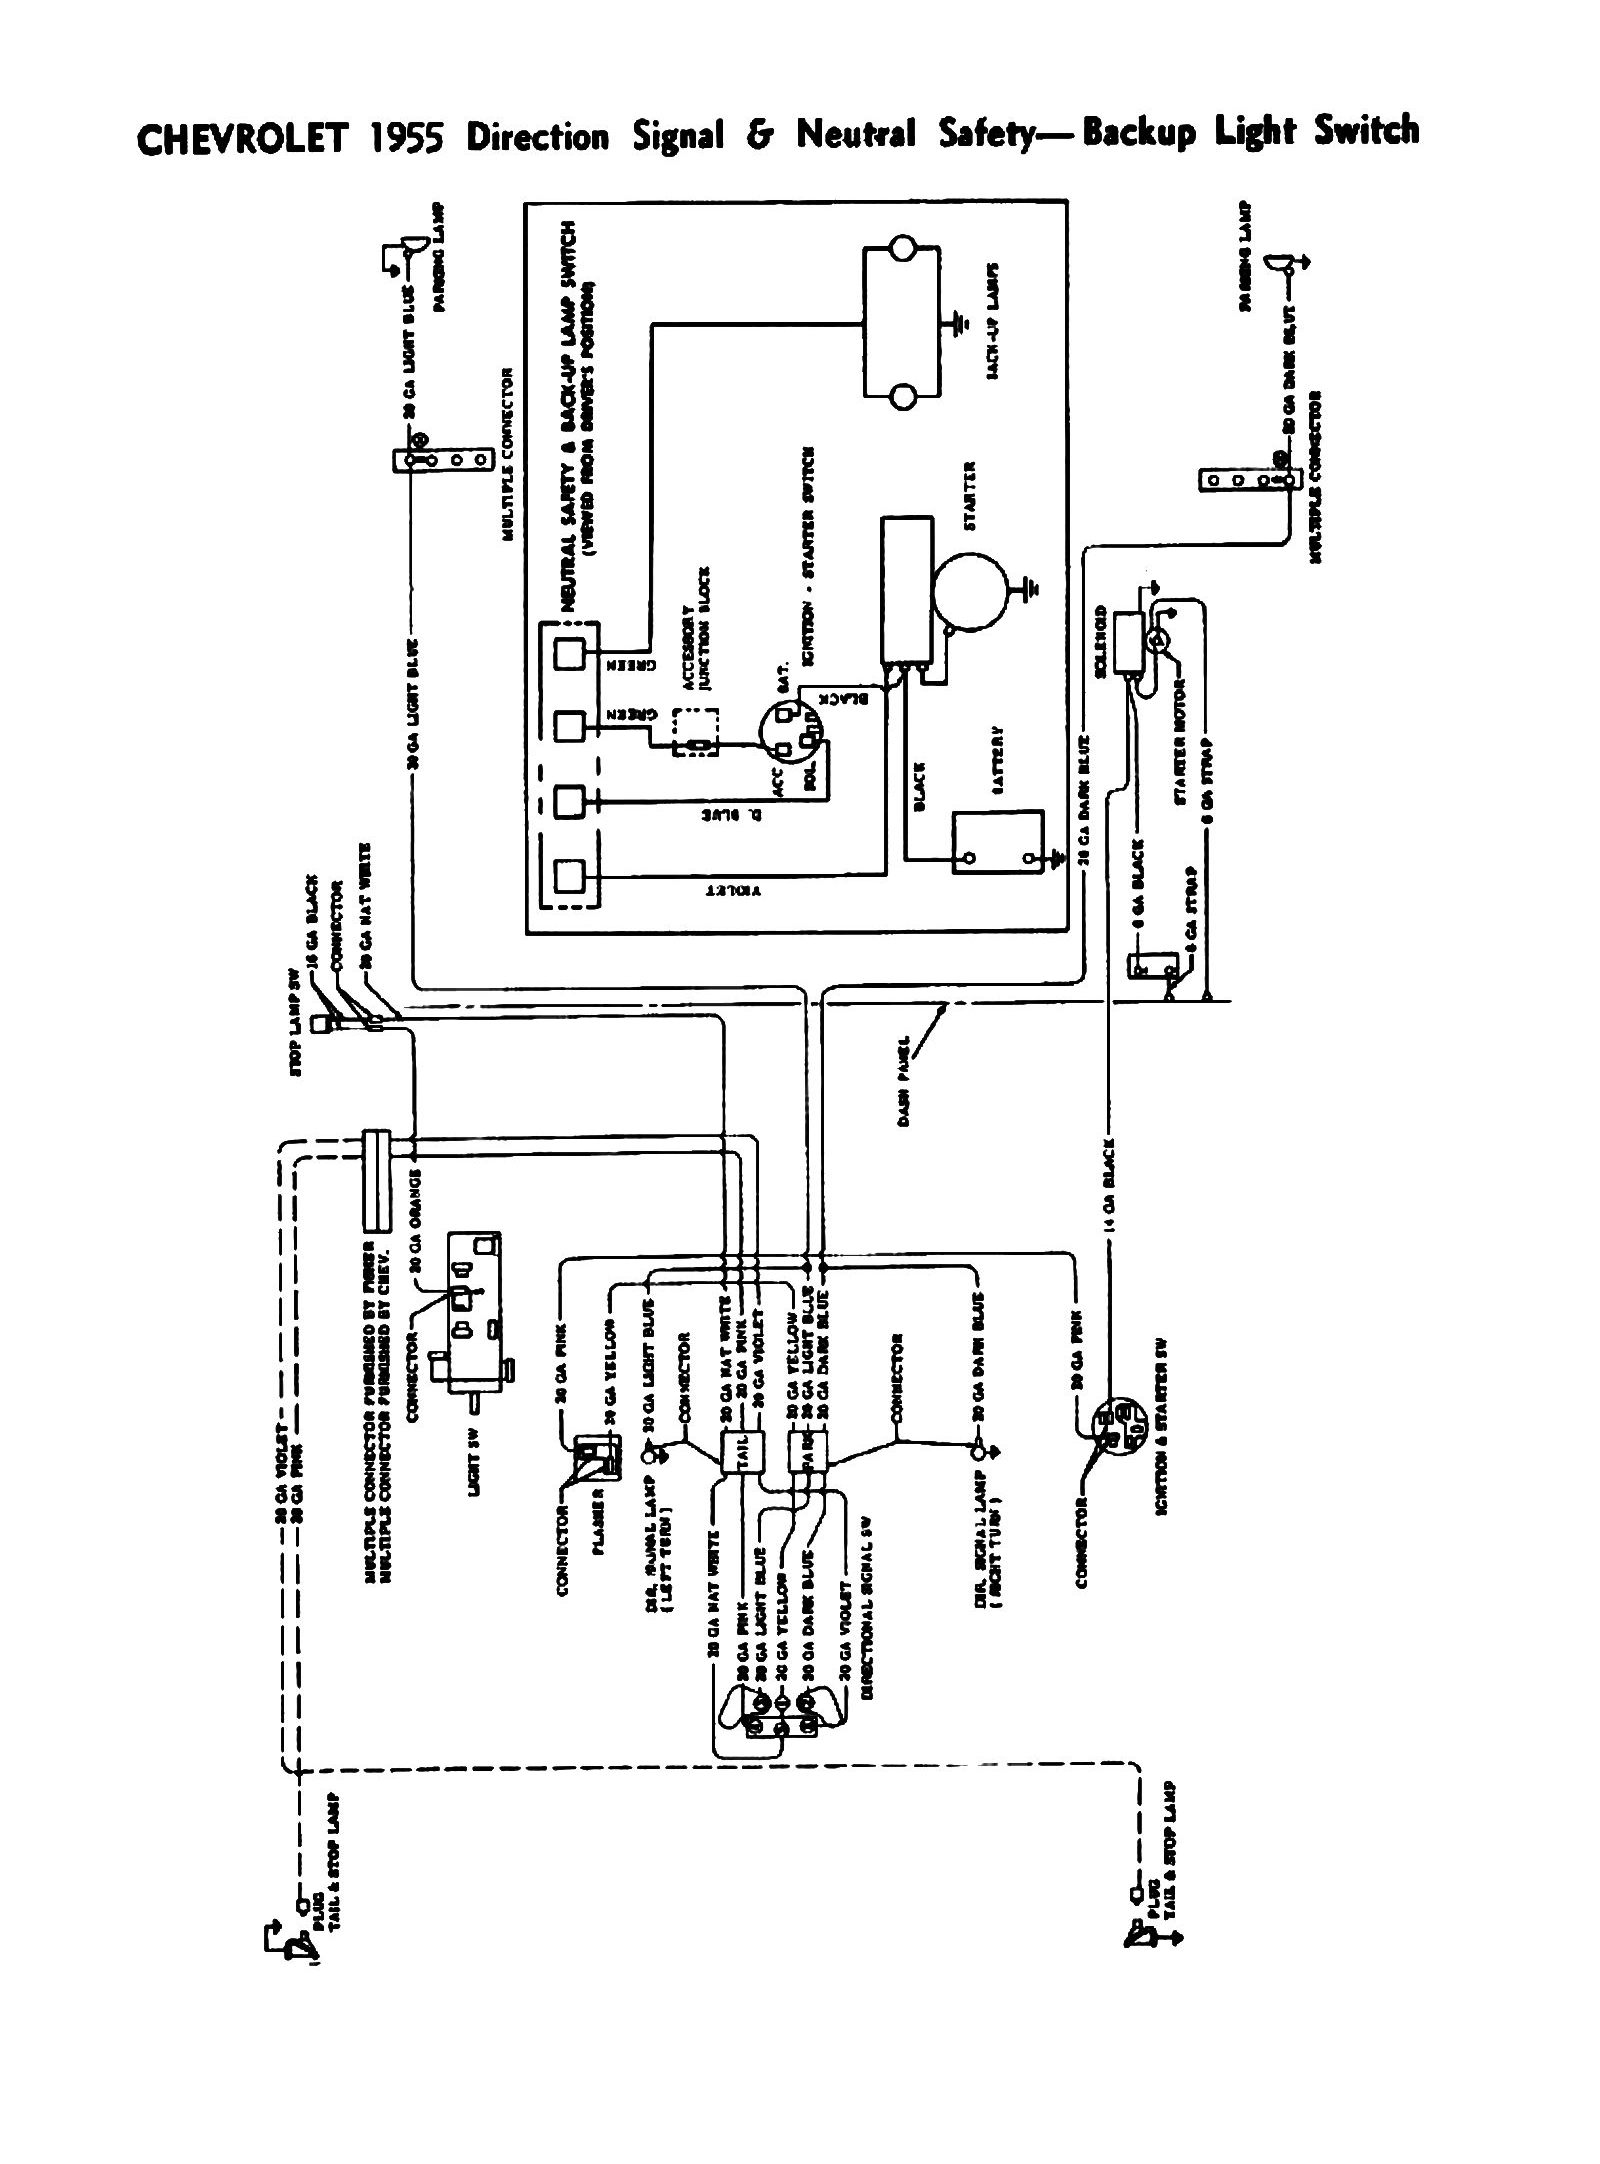 55signal chevy wiring diagrams 2000 chevy impala ignition switch wiring diagram at crackthecode.co